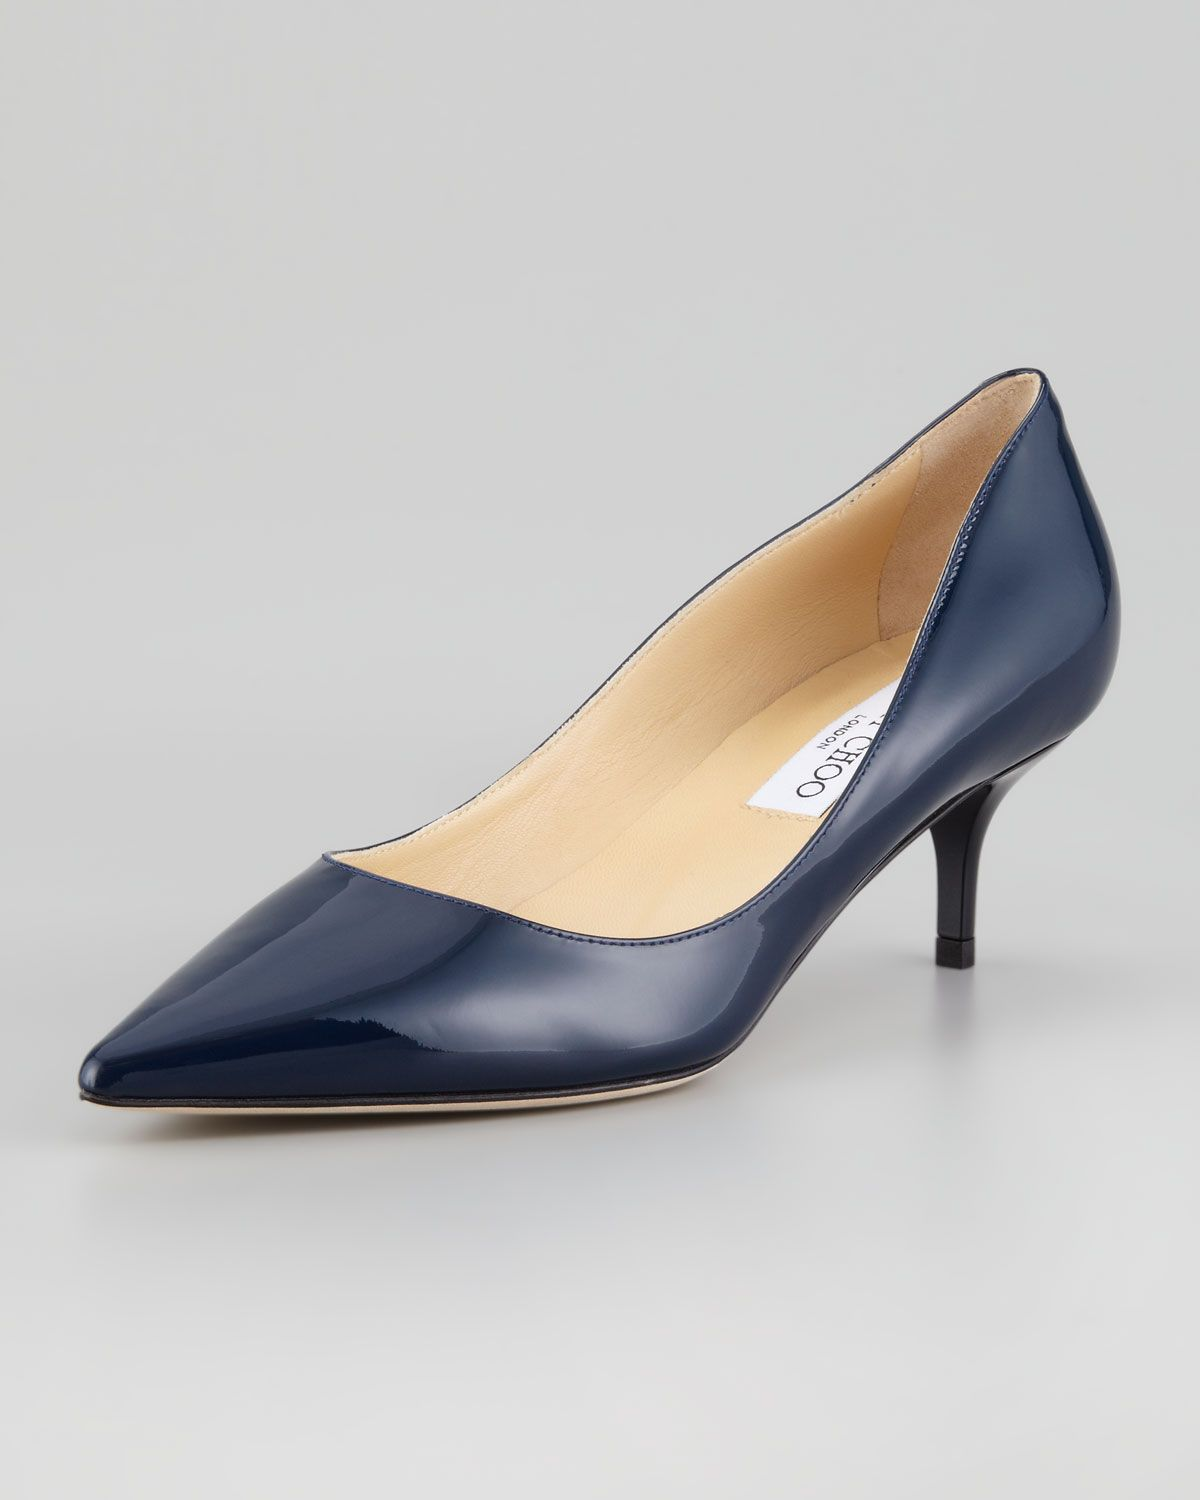 Aza Low-Heel Patent Pump, Navy by Jimmy Choo at Neiman Marcus.